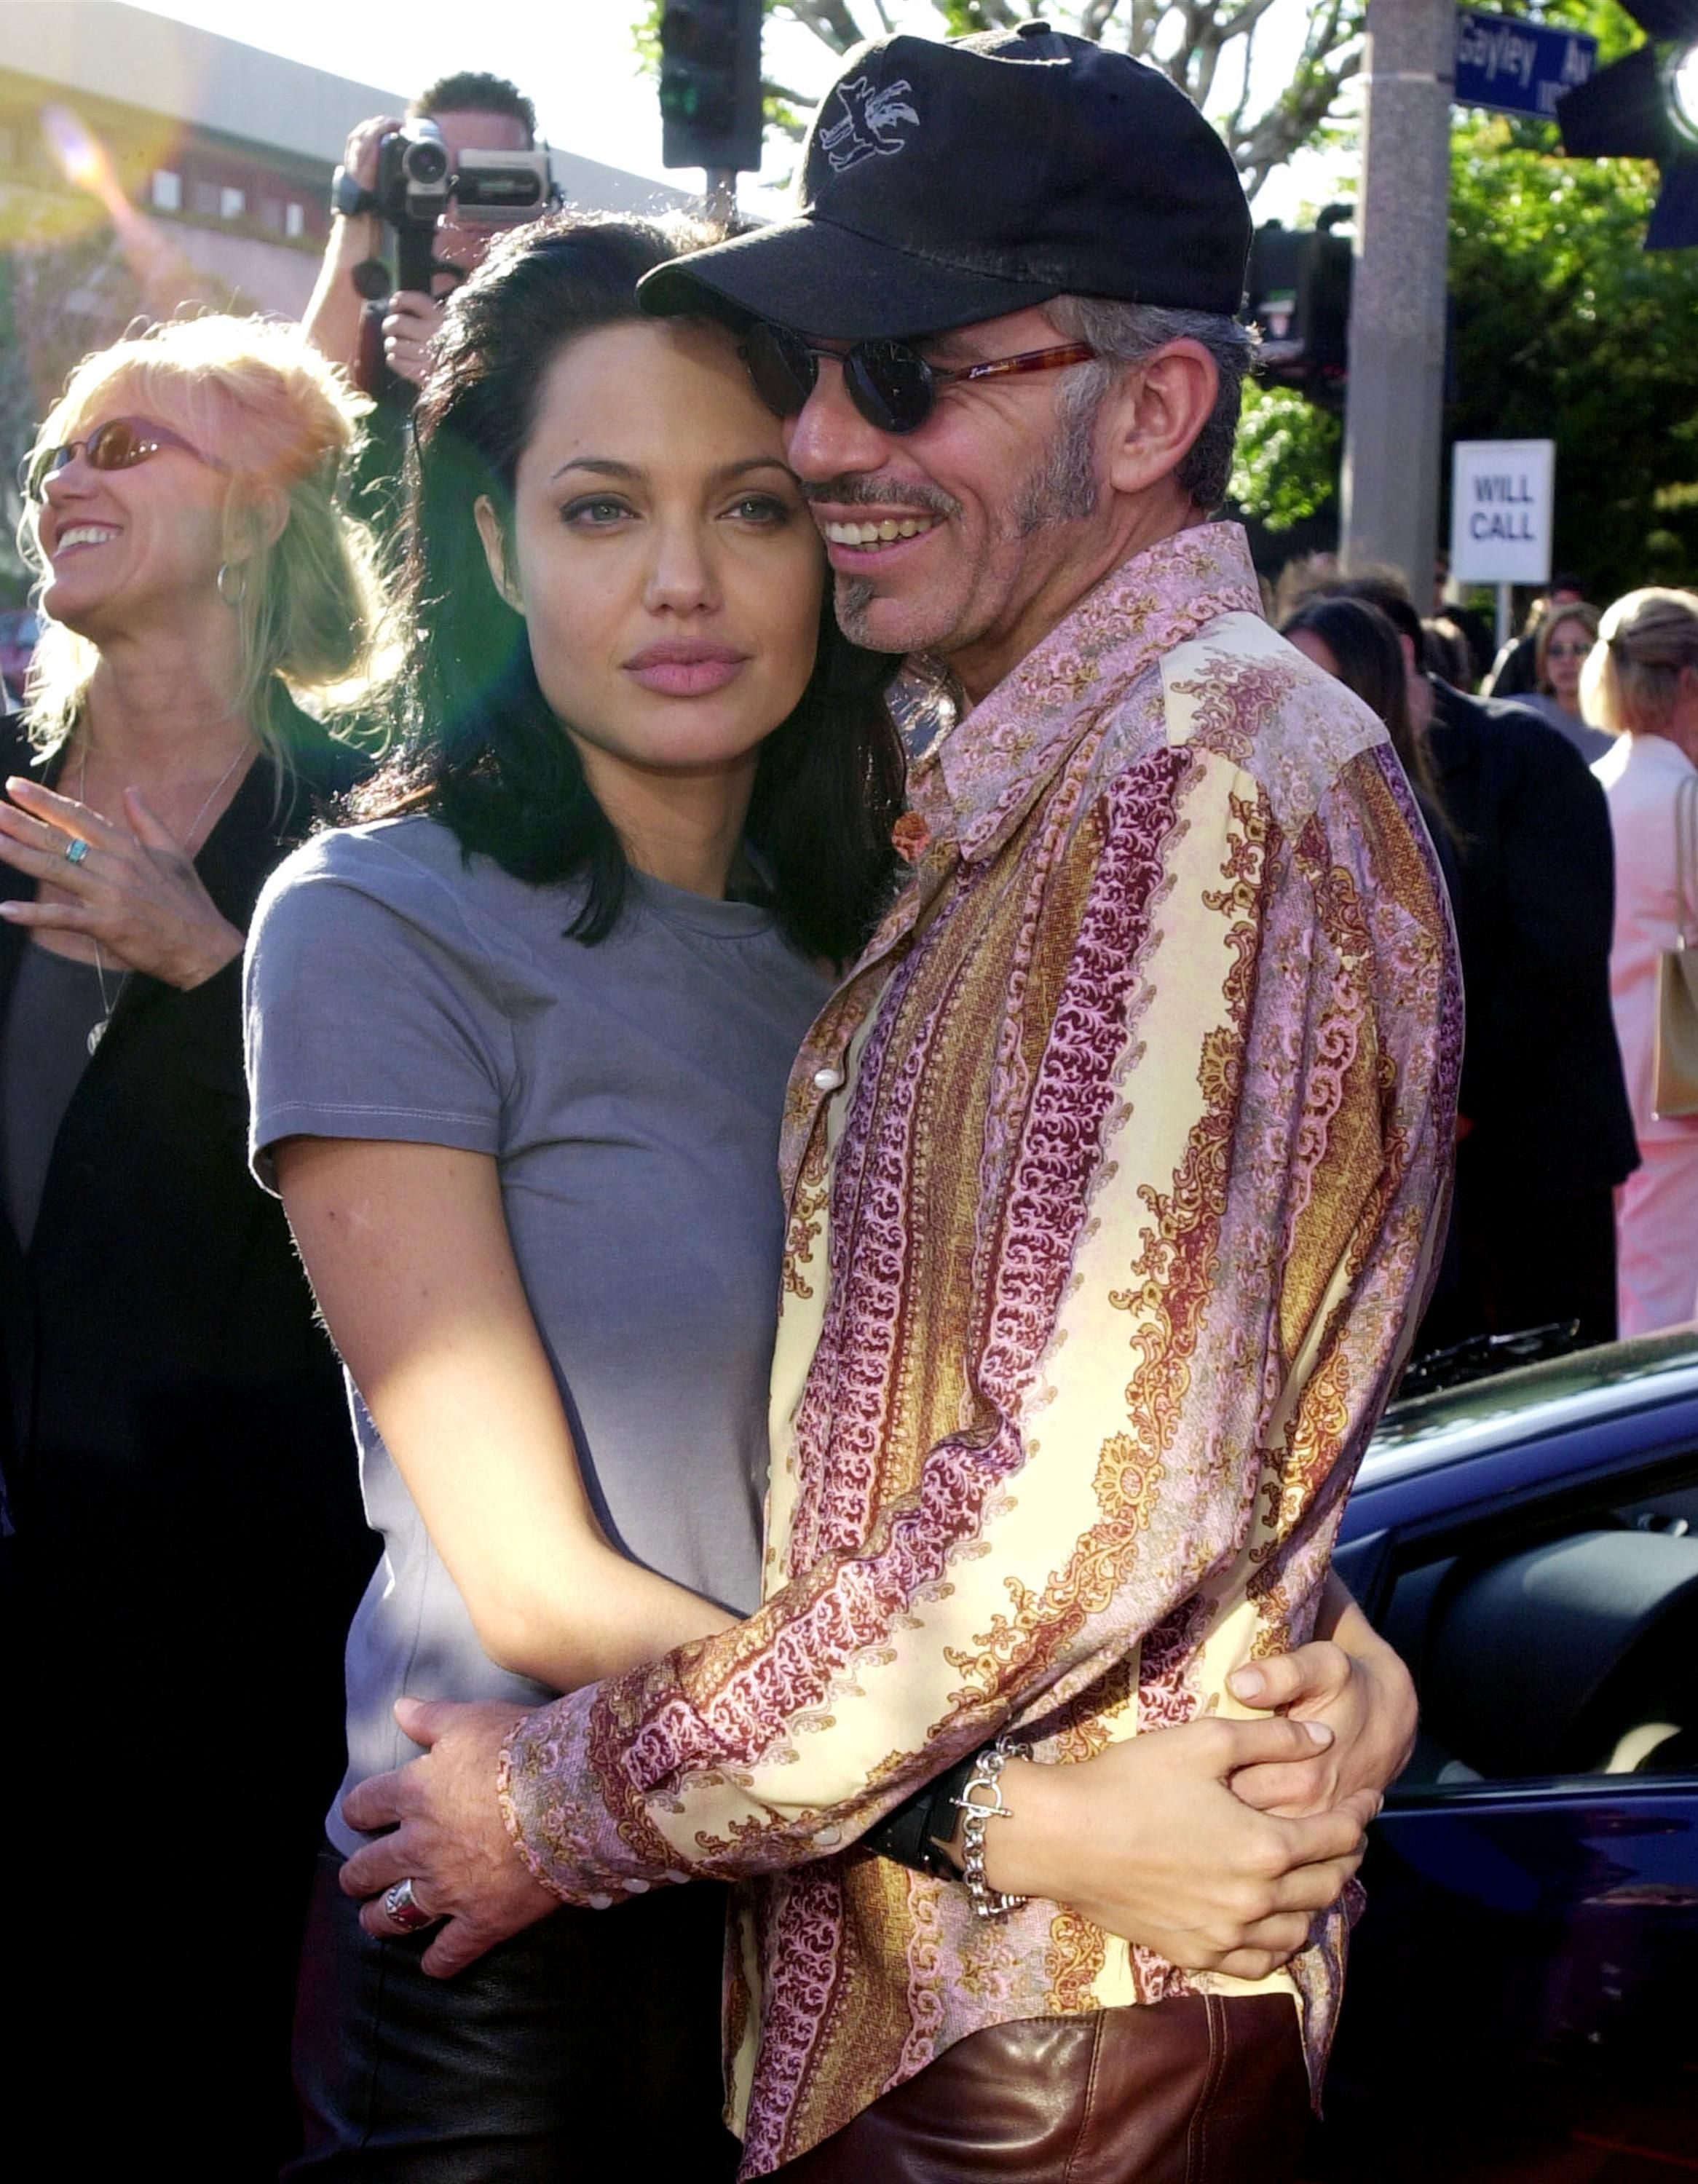 """Angelina Jolie and then-husband Billy Bob Thornton at the premiere of """"Gone In 60 Seconds"""", California, 2000 